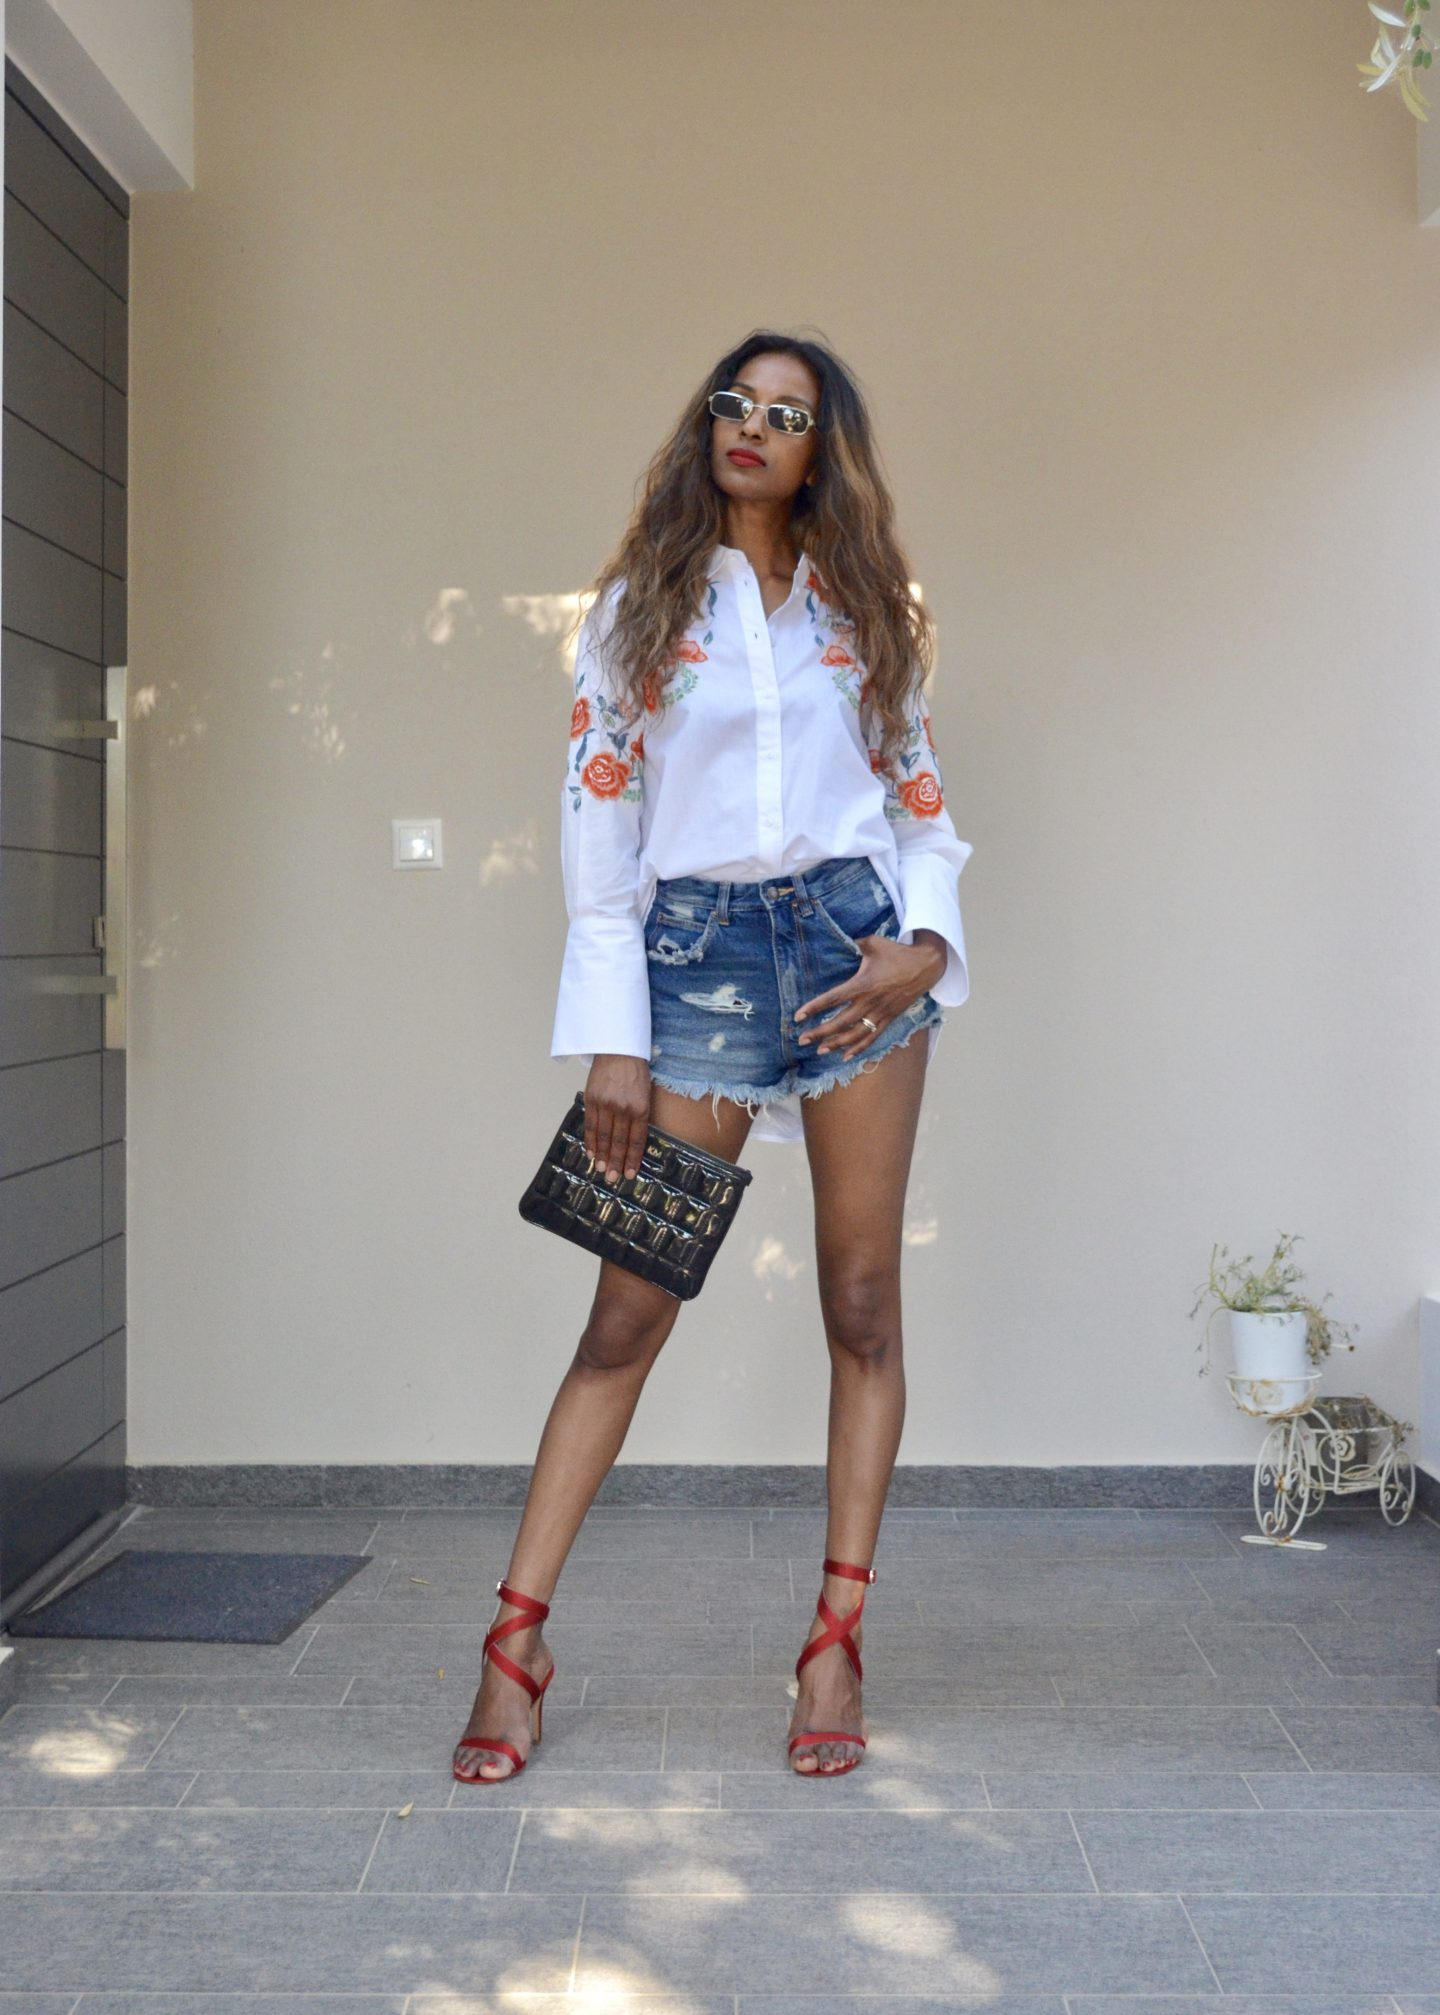 How to wear an oversized shirt with denim shorts